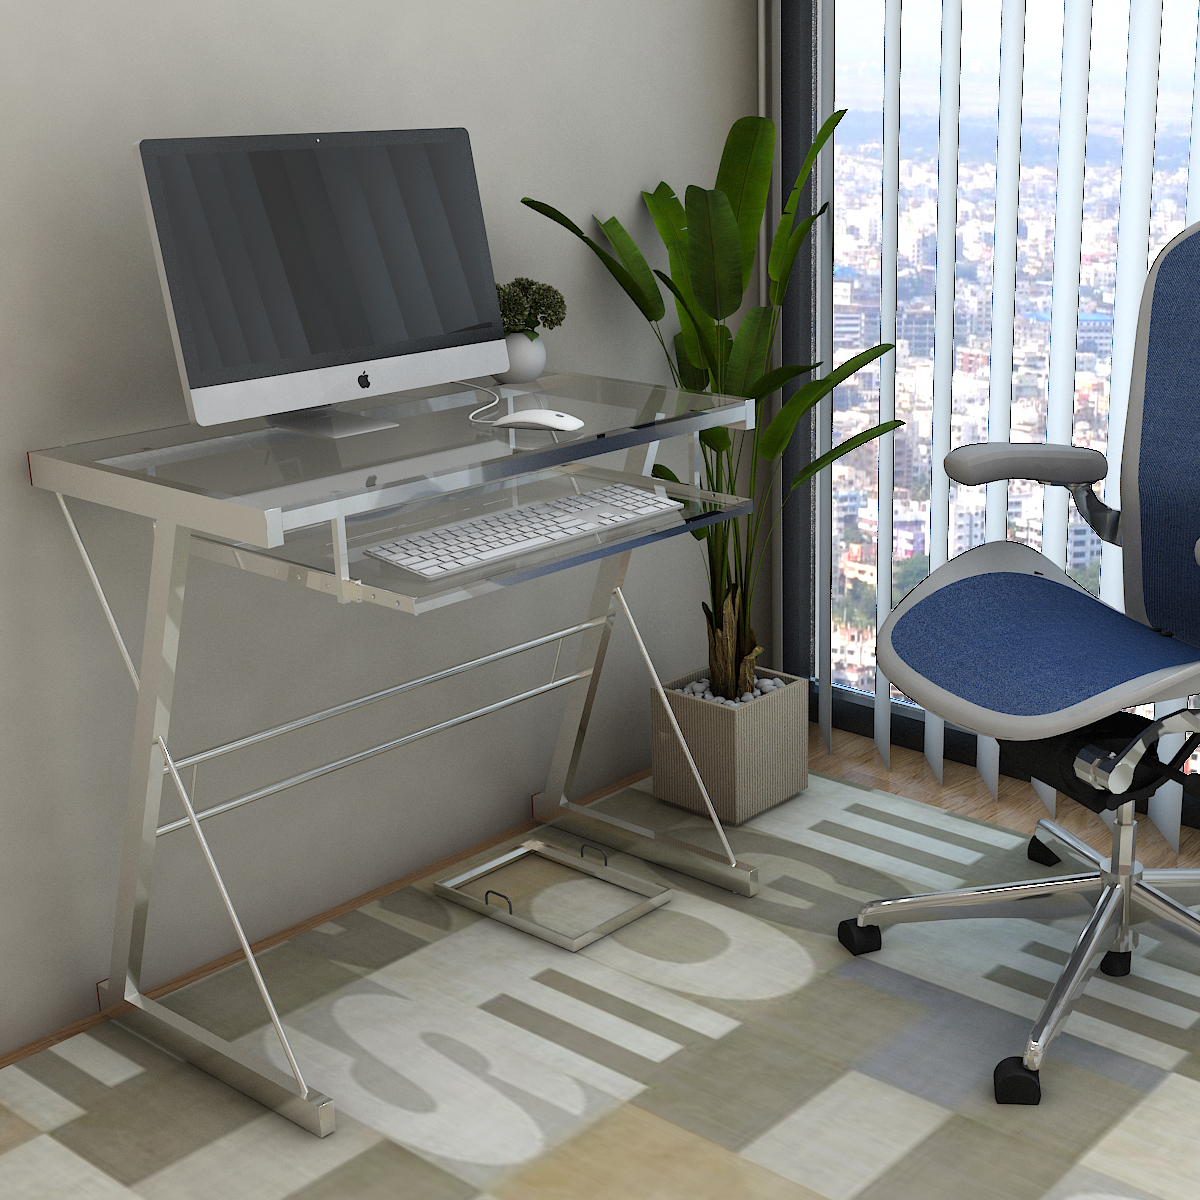 Ryan Rove Becker Metal and Glass Computer Desk - Home and Office Desks with Keyboard Tray - Writing and Laptop Console Table for